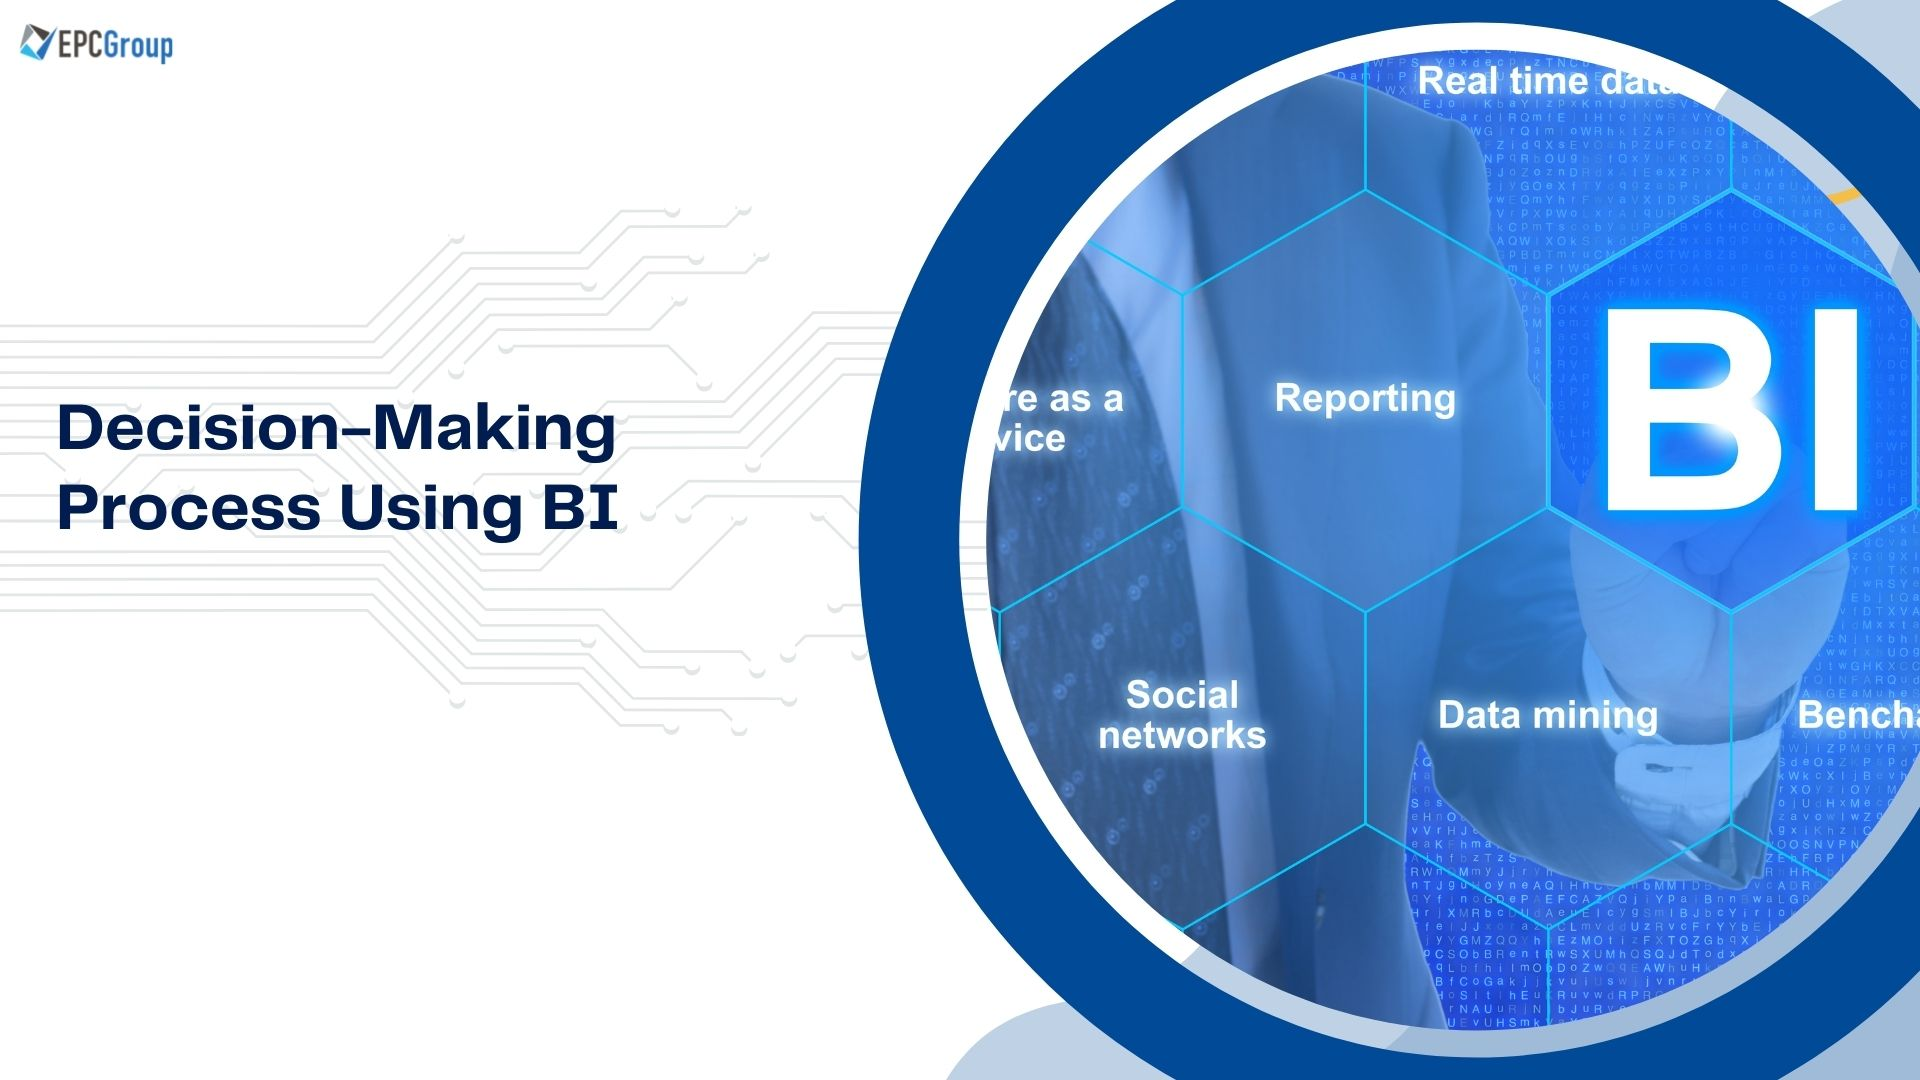 Steps Involved in Decision-Making Process Using BI? - thumb image